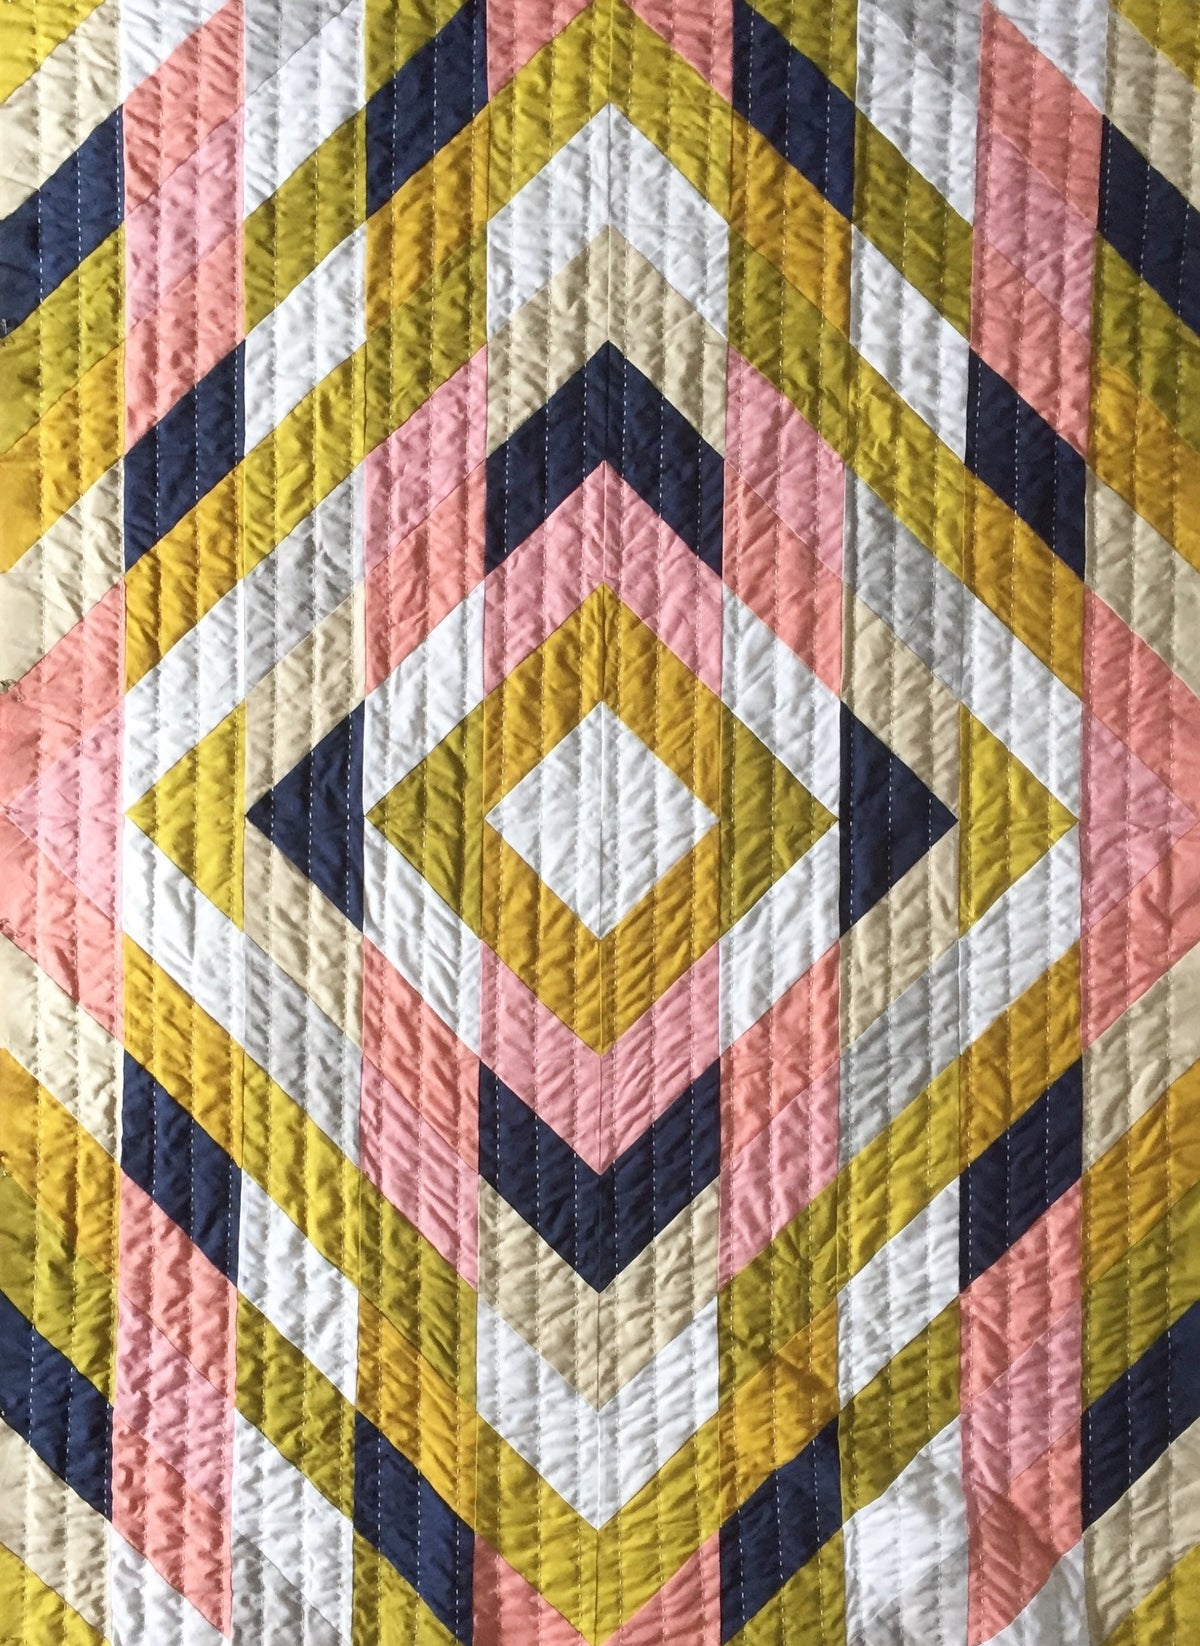 Image of Diamond Quilt